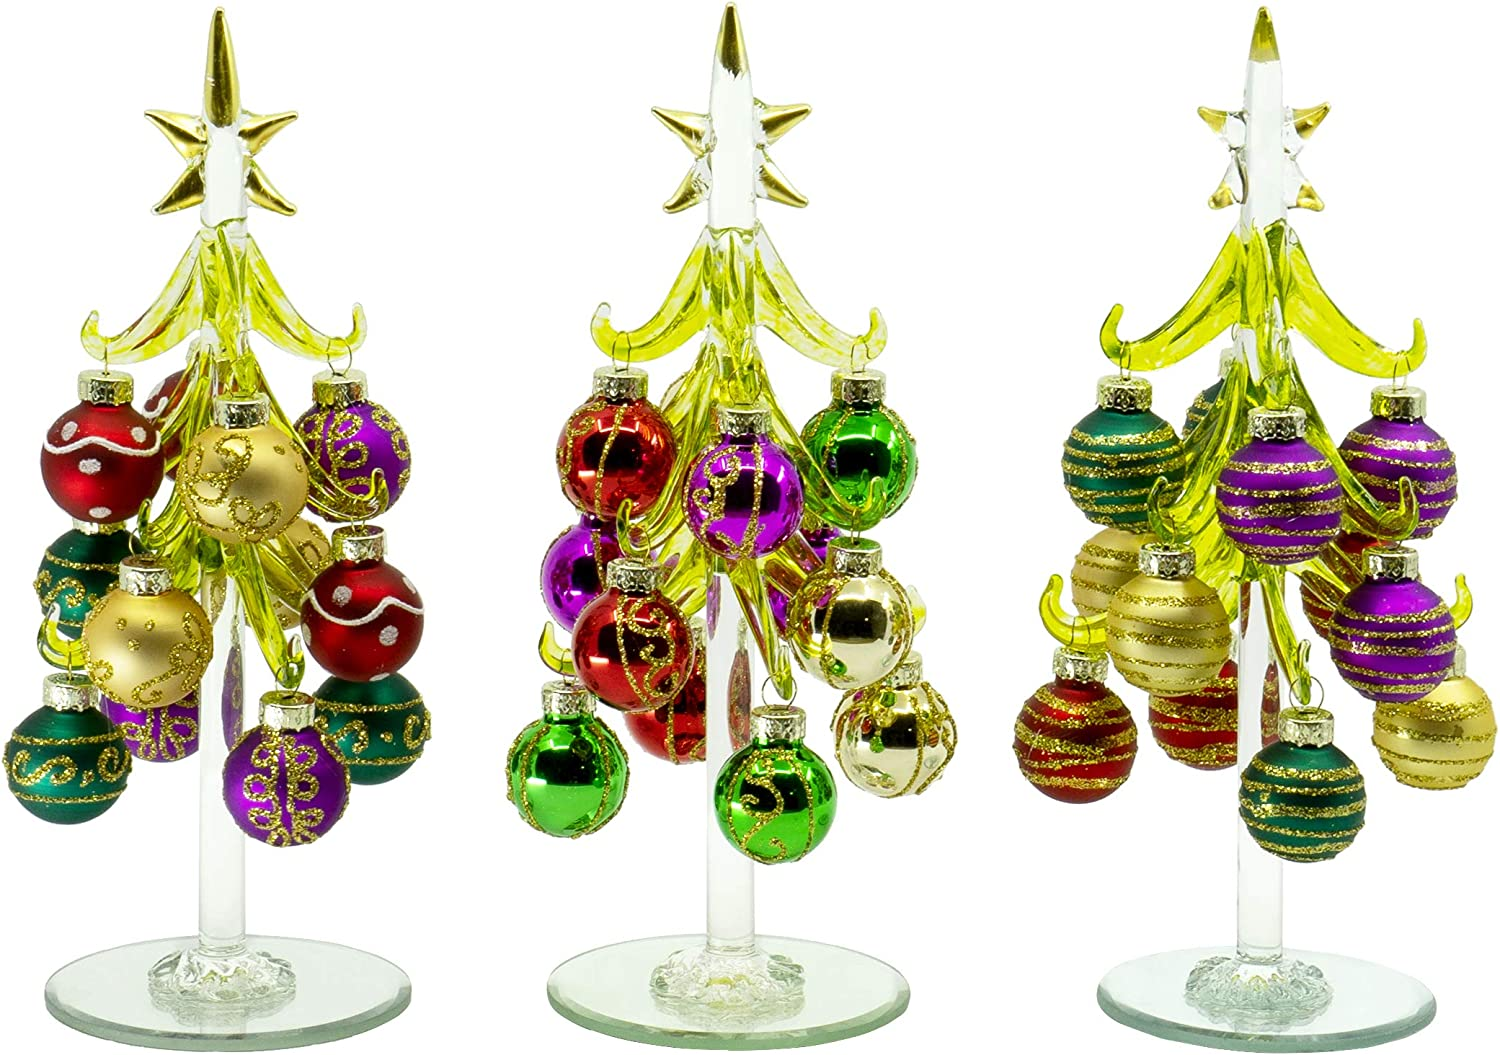 Red Co. Glass Christmas Tree Tabletop Display Decoration with Assorted Ball Ornaments, Holiday Season Decor, 8 Inches, Set of 3